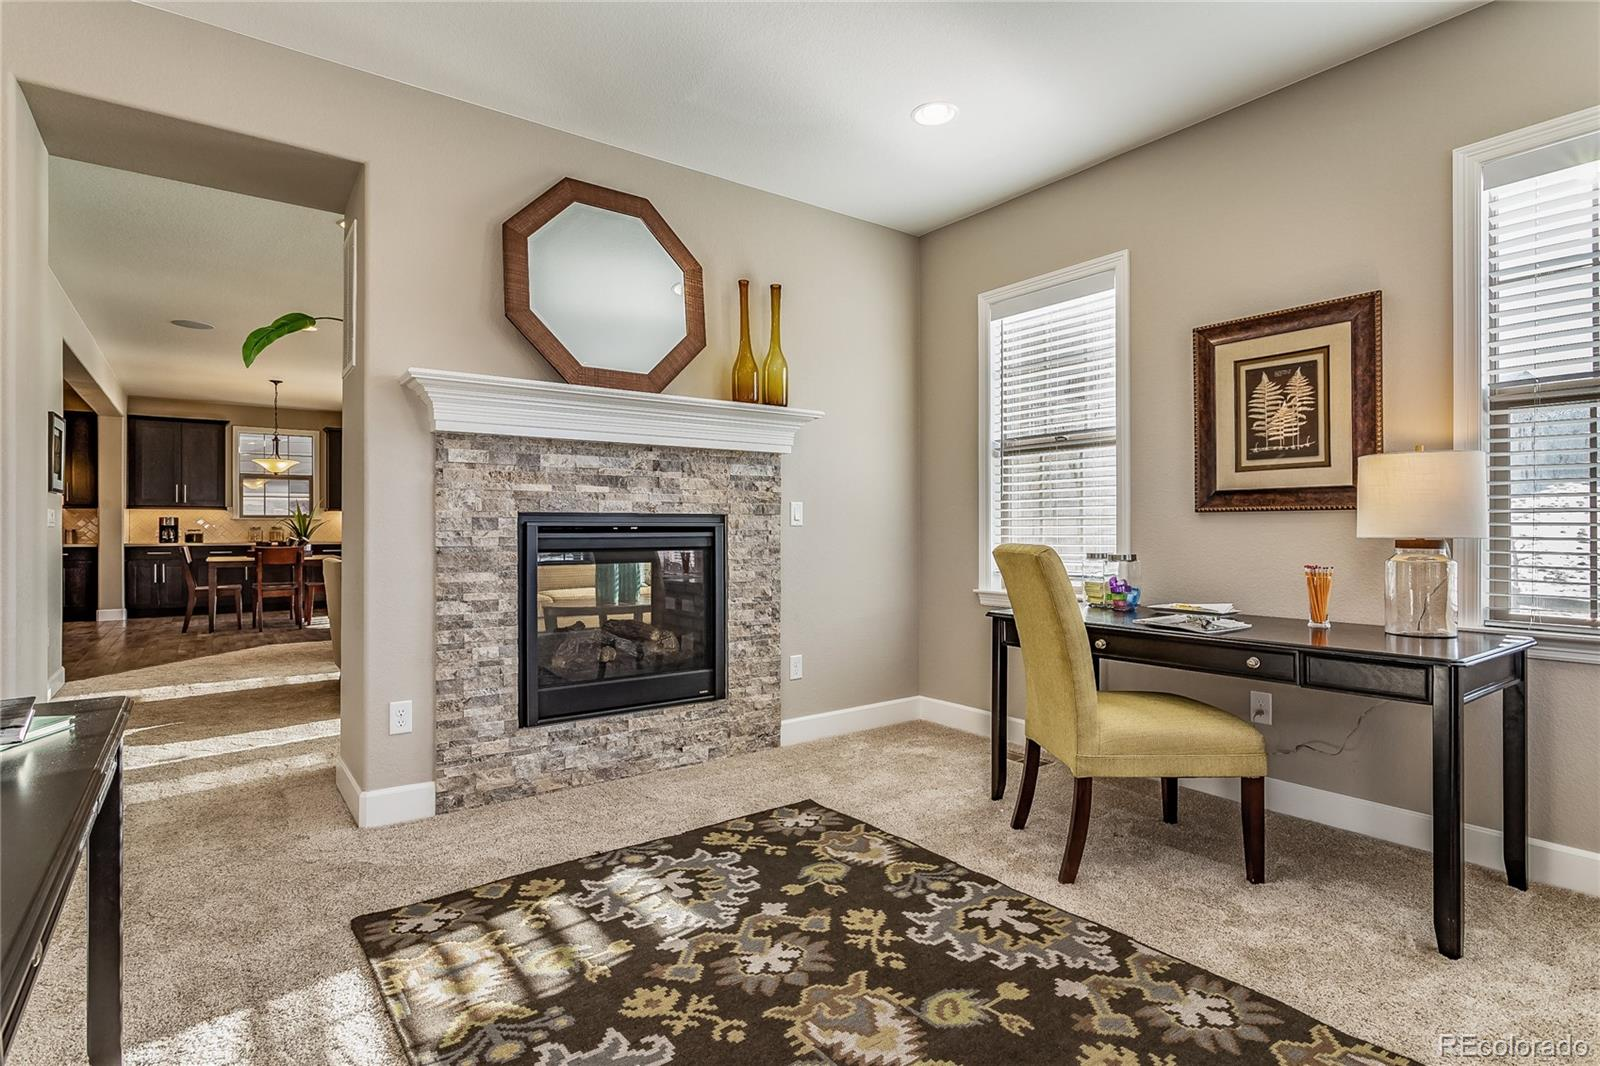 MLS# 3599315 - 12 - 10675 Greycliffe Drive, Highlands Ranch, CO 80126